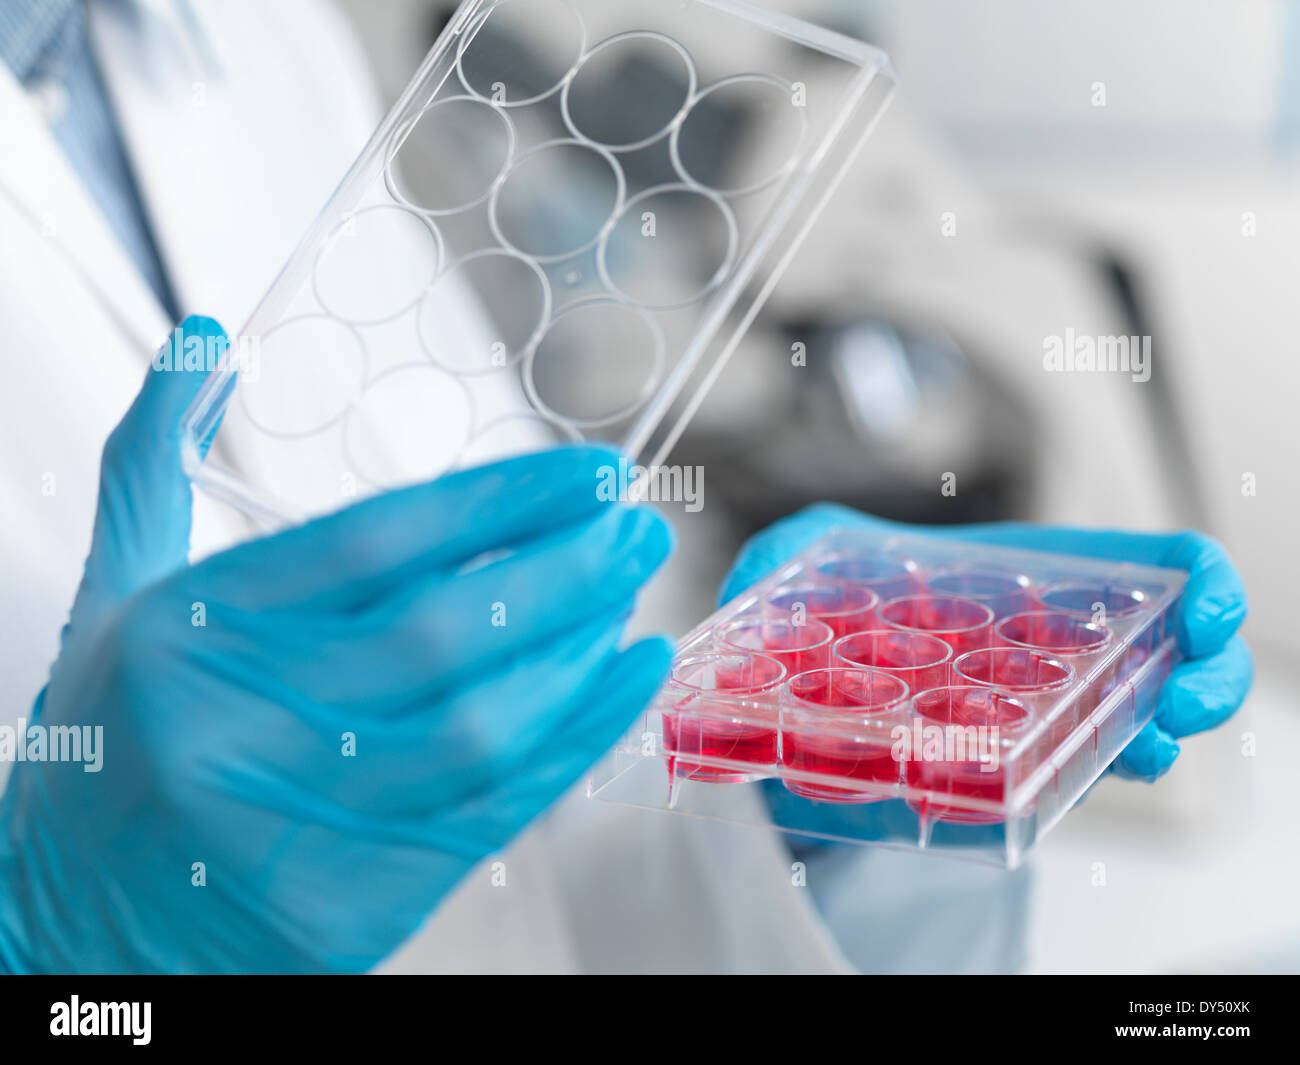 Stem cell research. Close up of female scientist examining cell cultures in multiwell tray - Stock Image